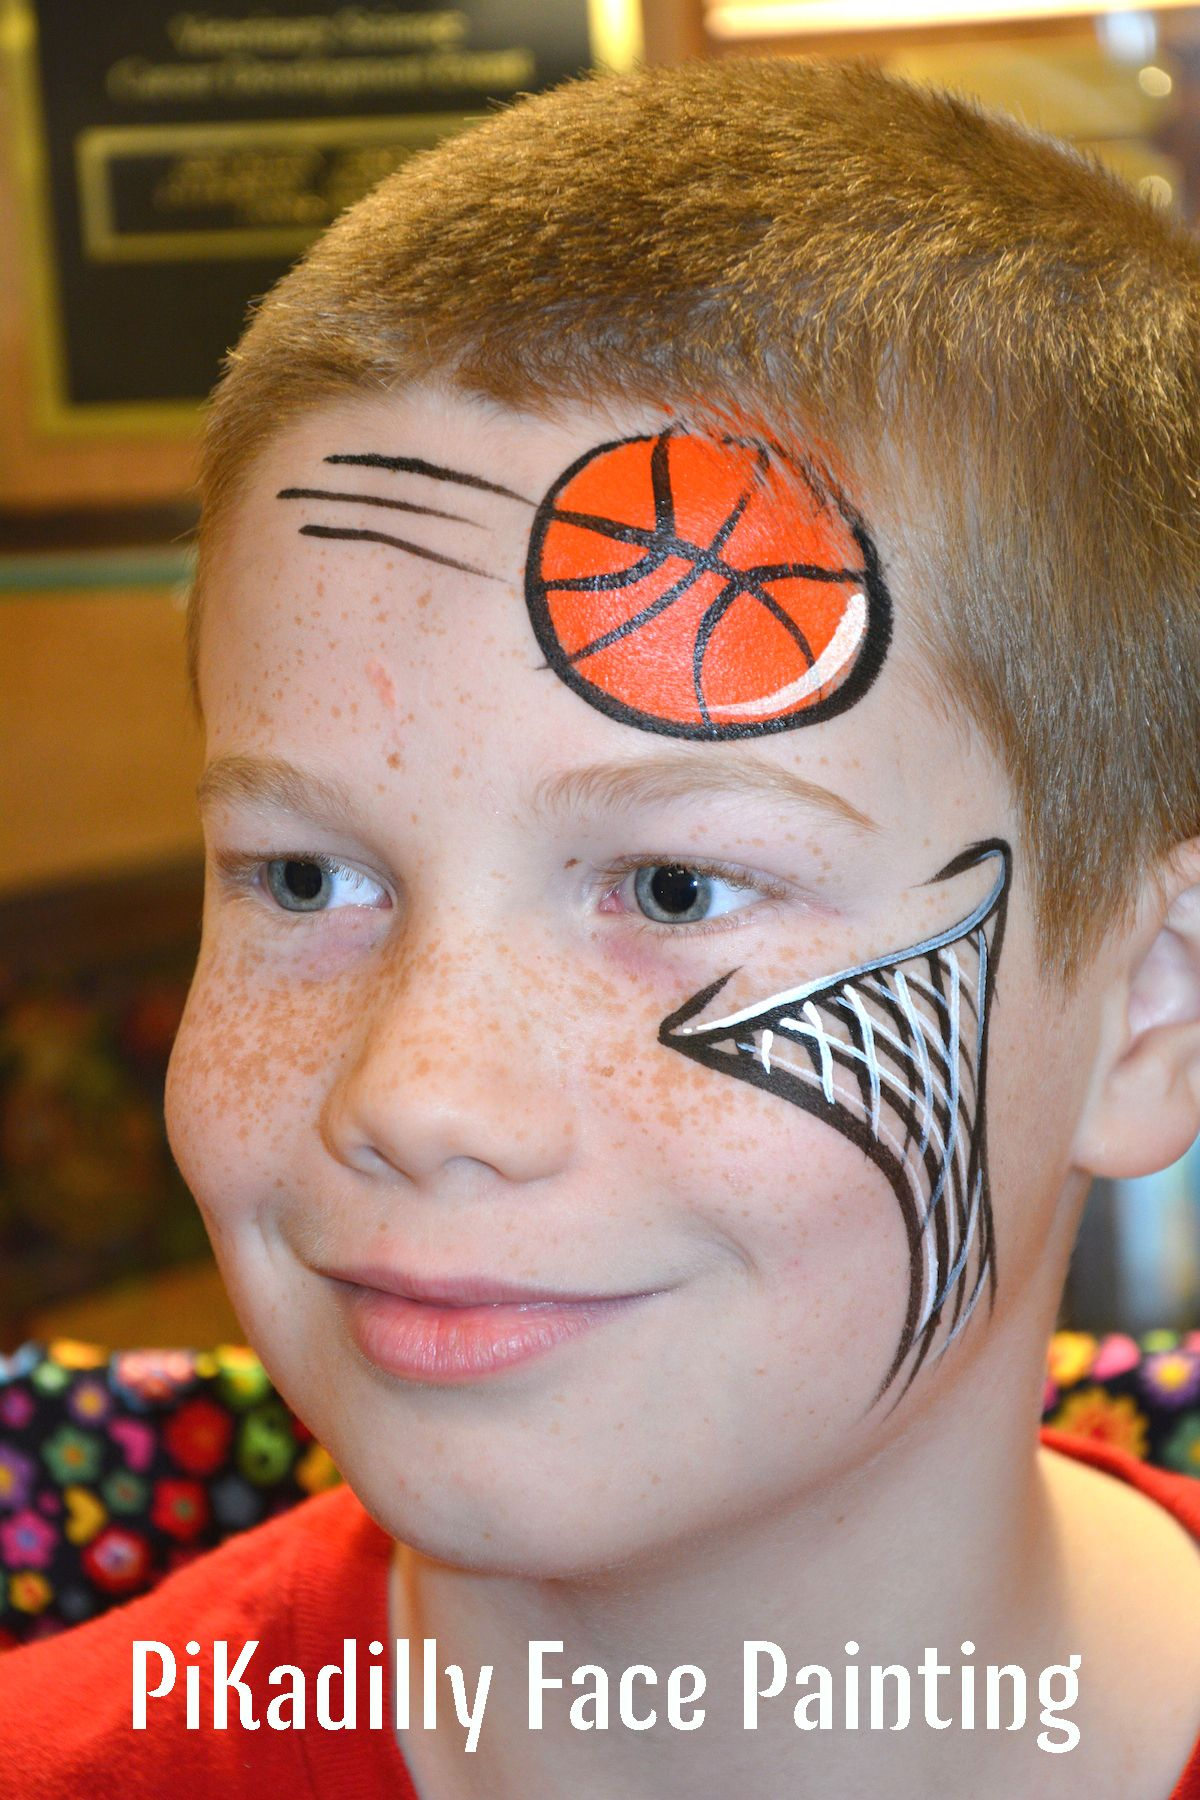 Uncategorized Face Painting For Boys basketball and net design by pikadilly face painting painting